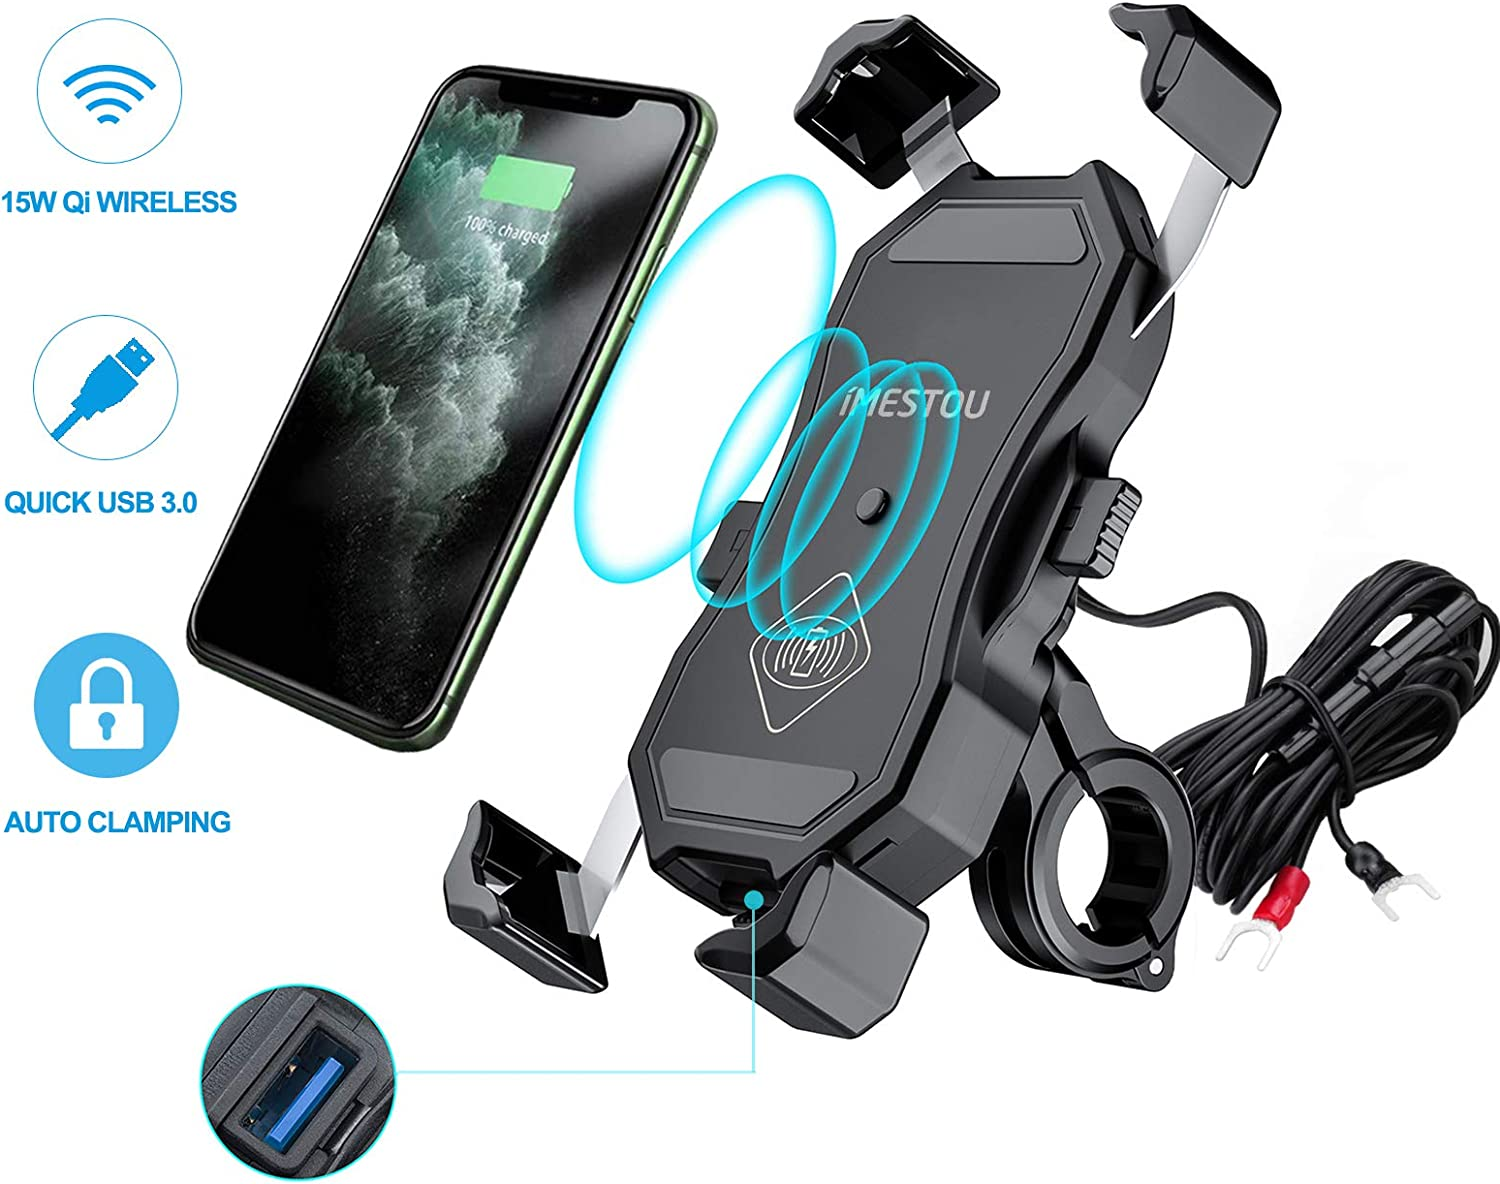 iMESTOU Motorcycle Wireless Qi/USB Phone Charger Holder Handlebar/Rear-view Mirror Cellphone Mount with Waterproof Switch 10A Fuse Fast Charging for iPhone Samsung 3.5-6.5 inch Cellphones